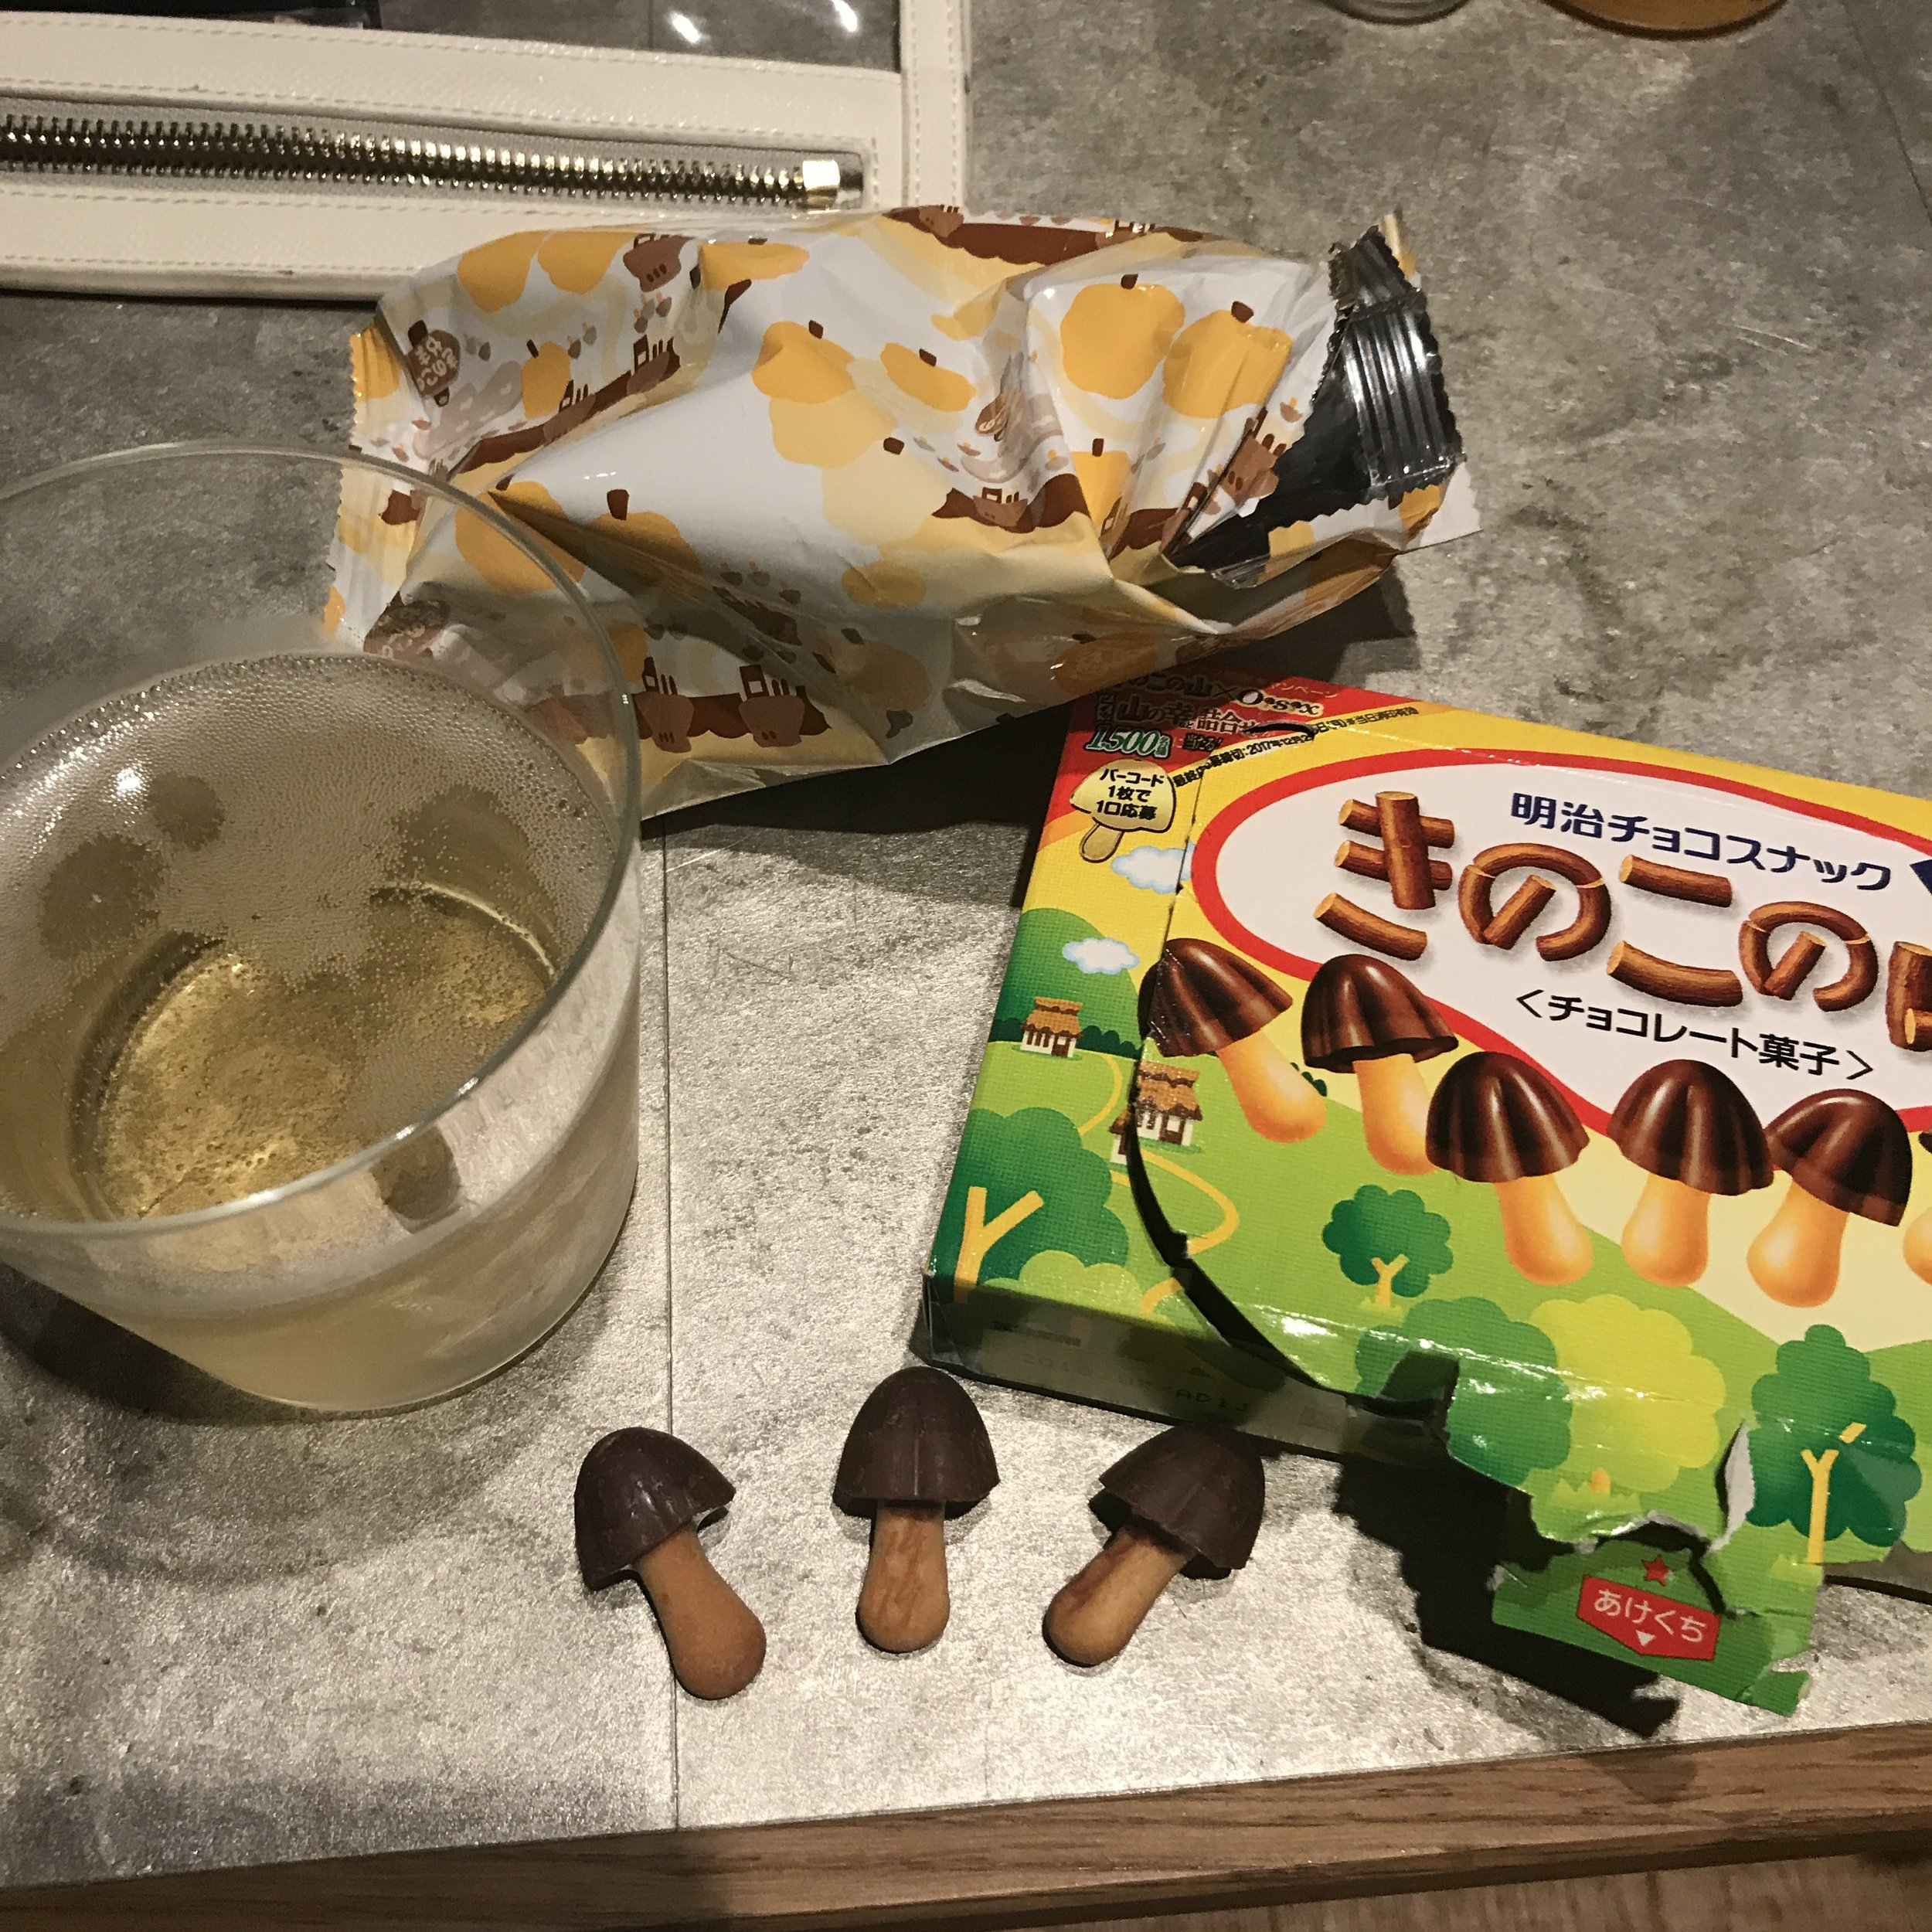 Later night Champagne and mushroom cookies